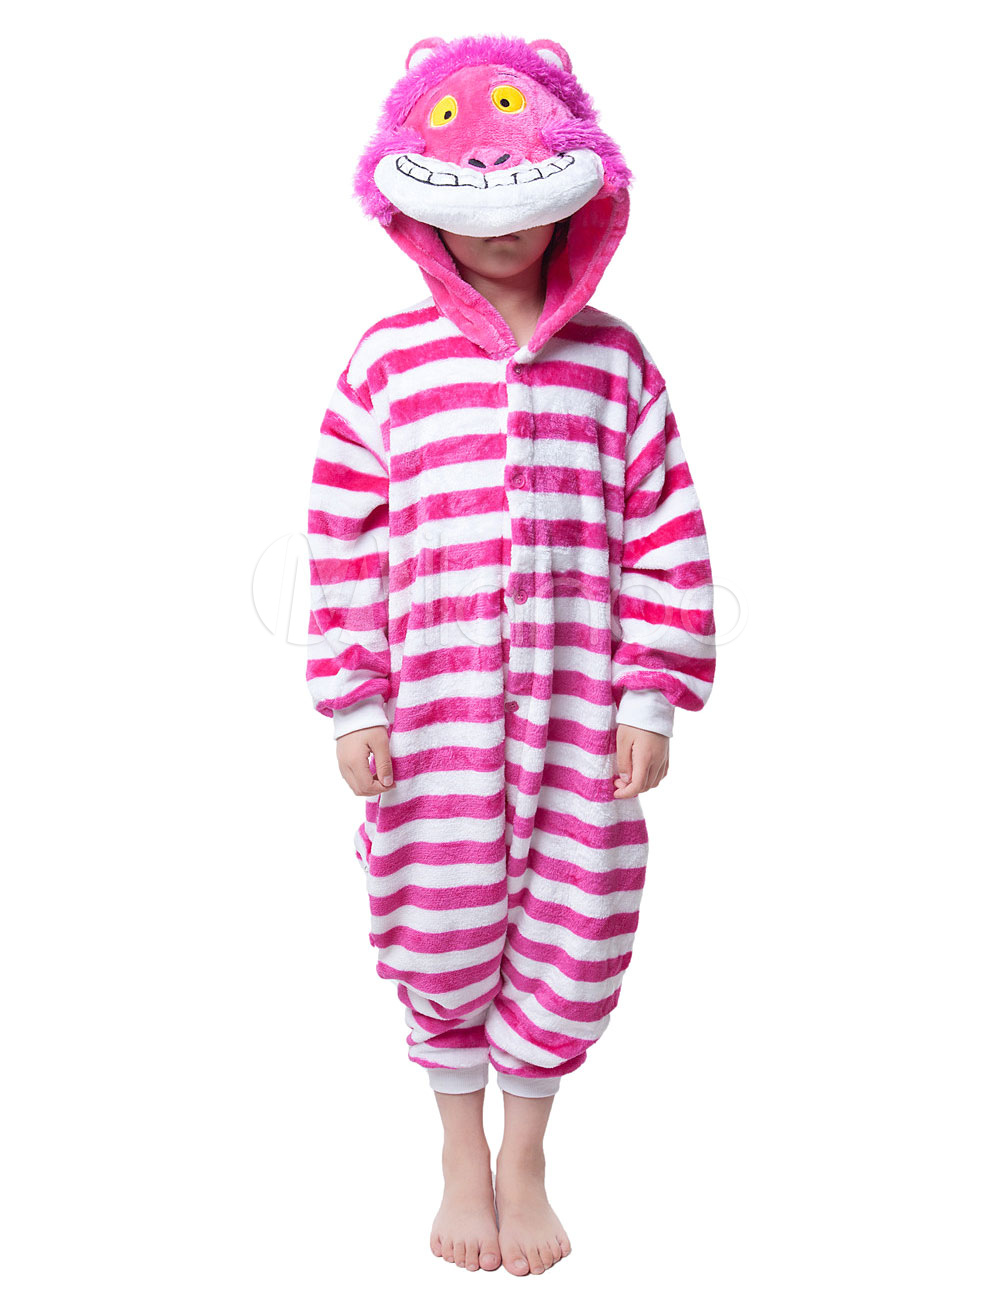 Buy Kigurumi Pajama Cheshire Cat Onesie For Kids Rose Red Synthetic Jumpsuit Christmas Mascot Costume Halloween for $18.89 in Milanoo store